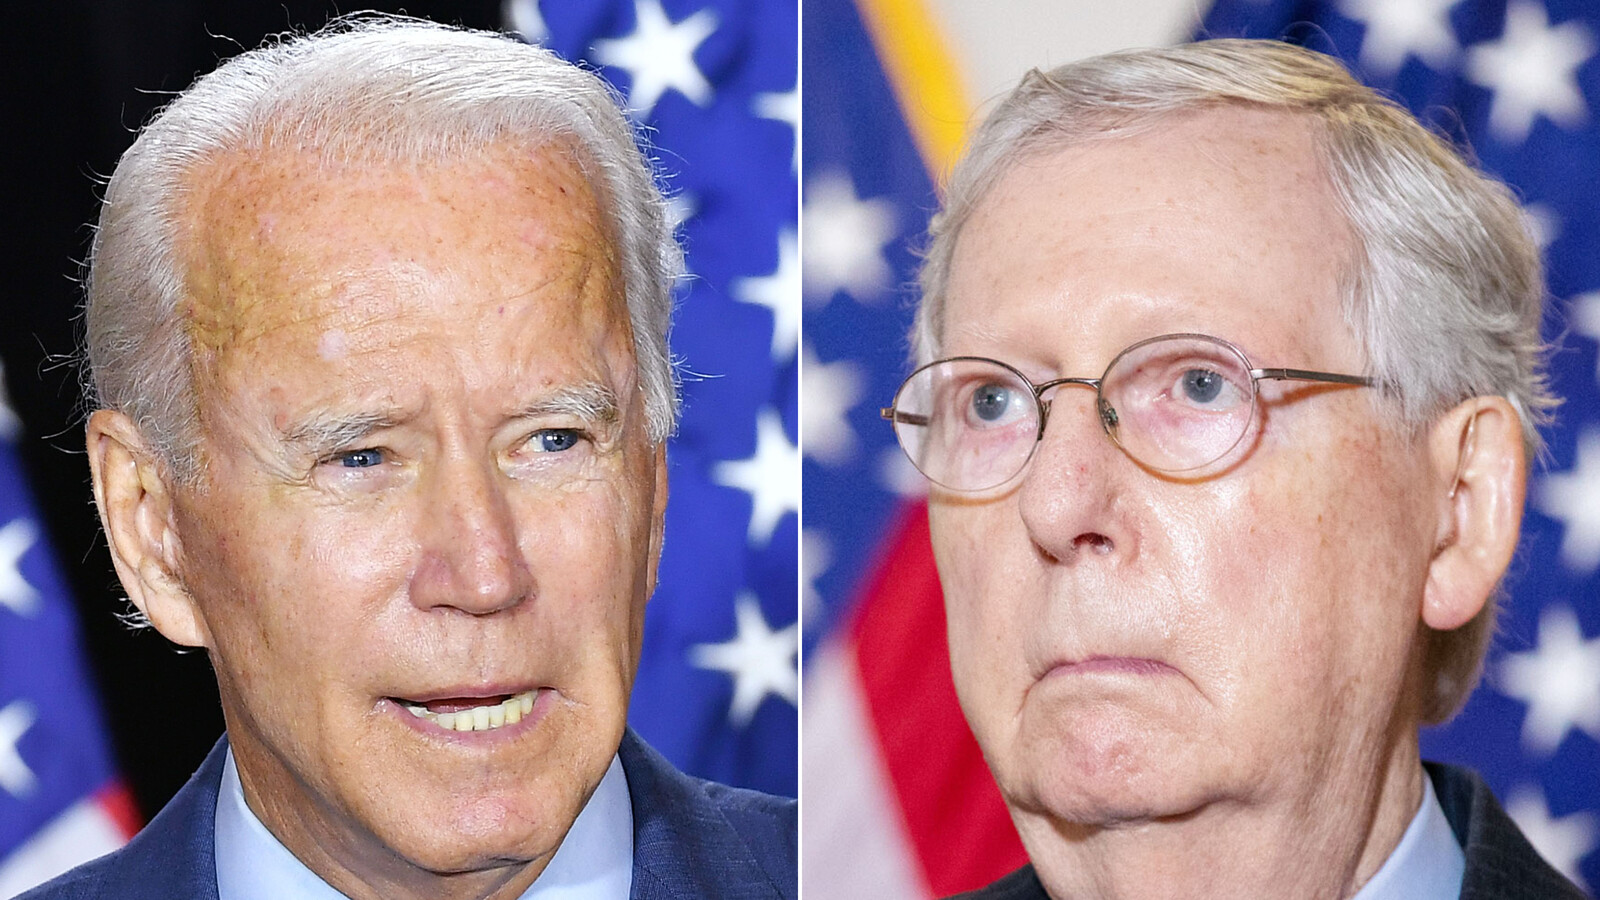 McConnell: 'There isn't going to be an impeachment' of Biden